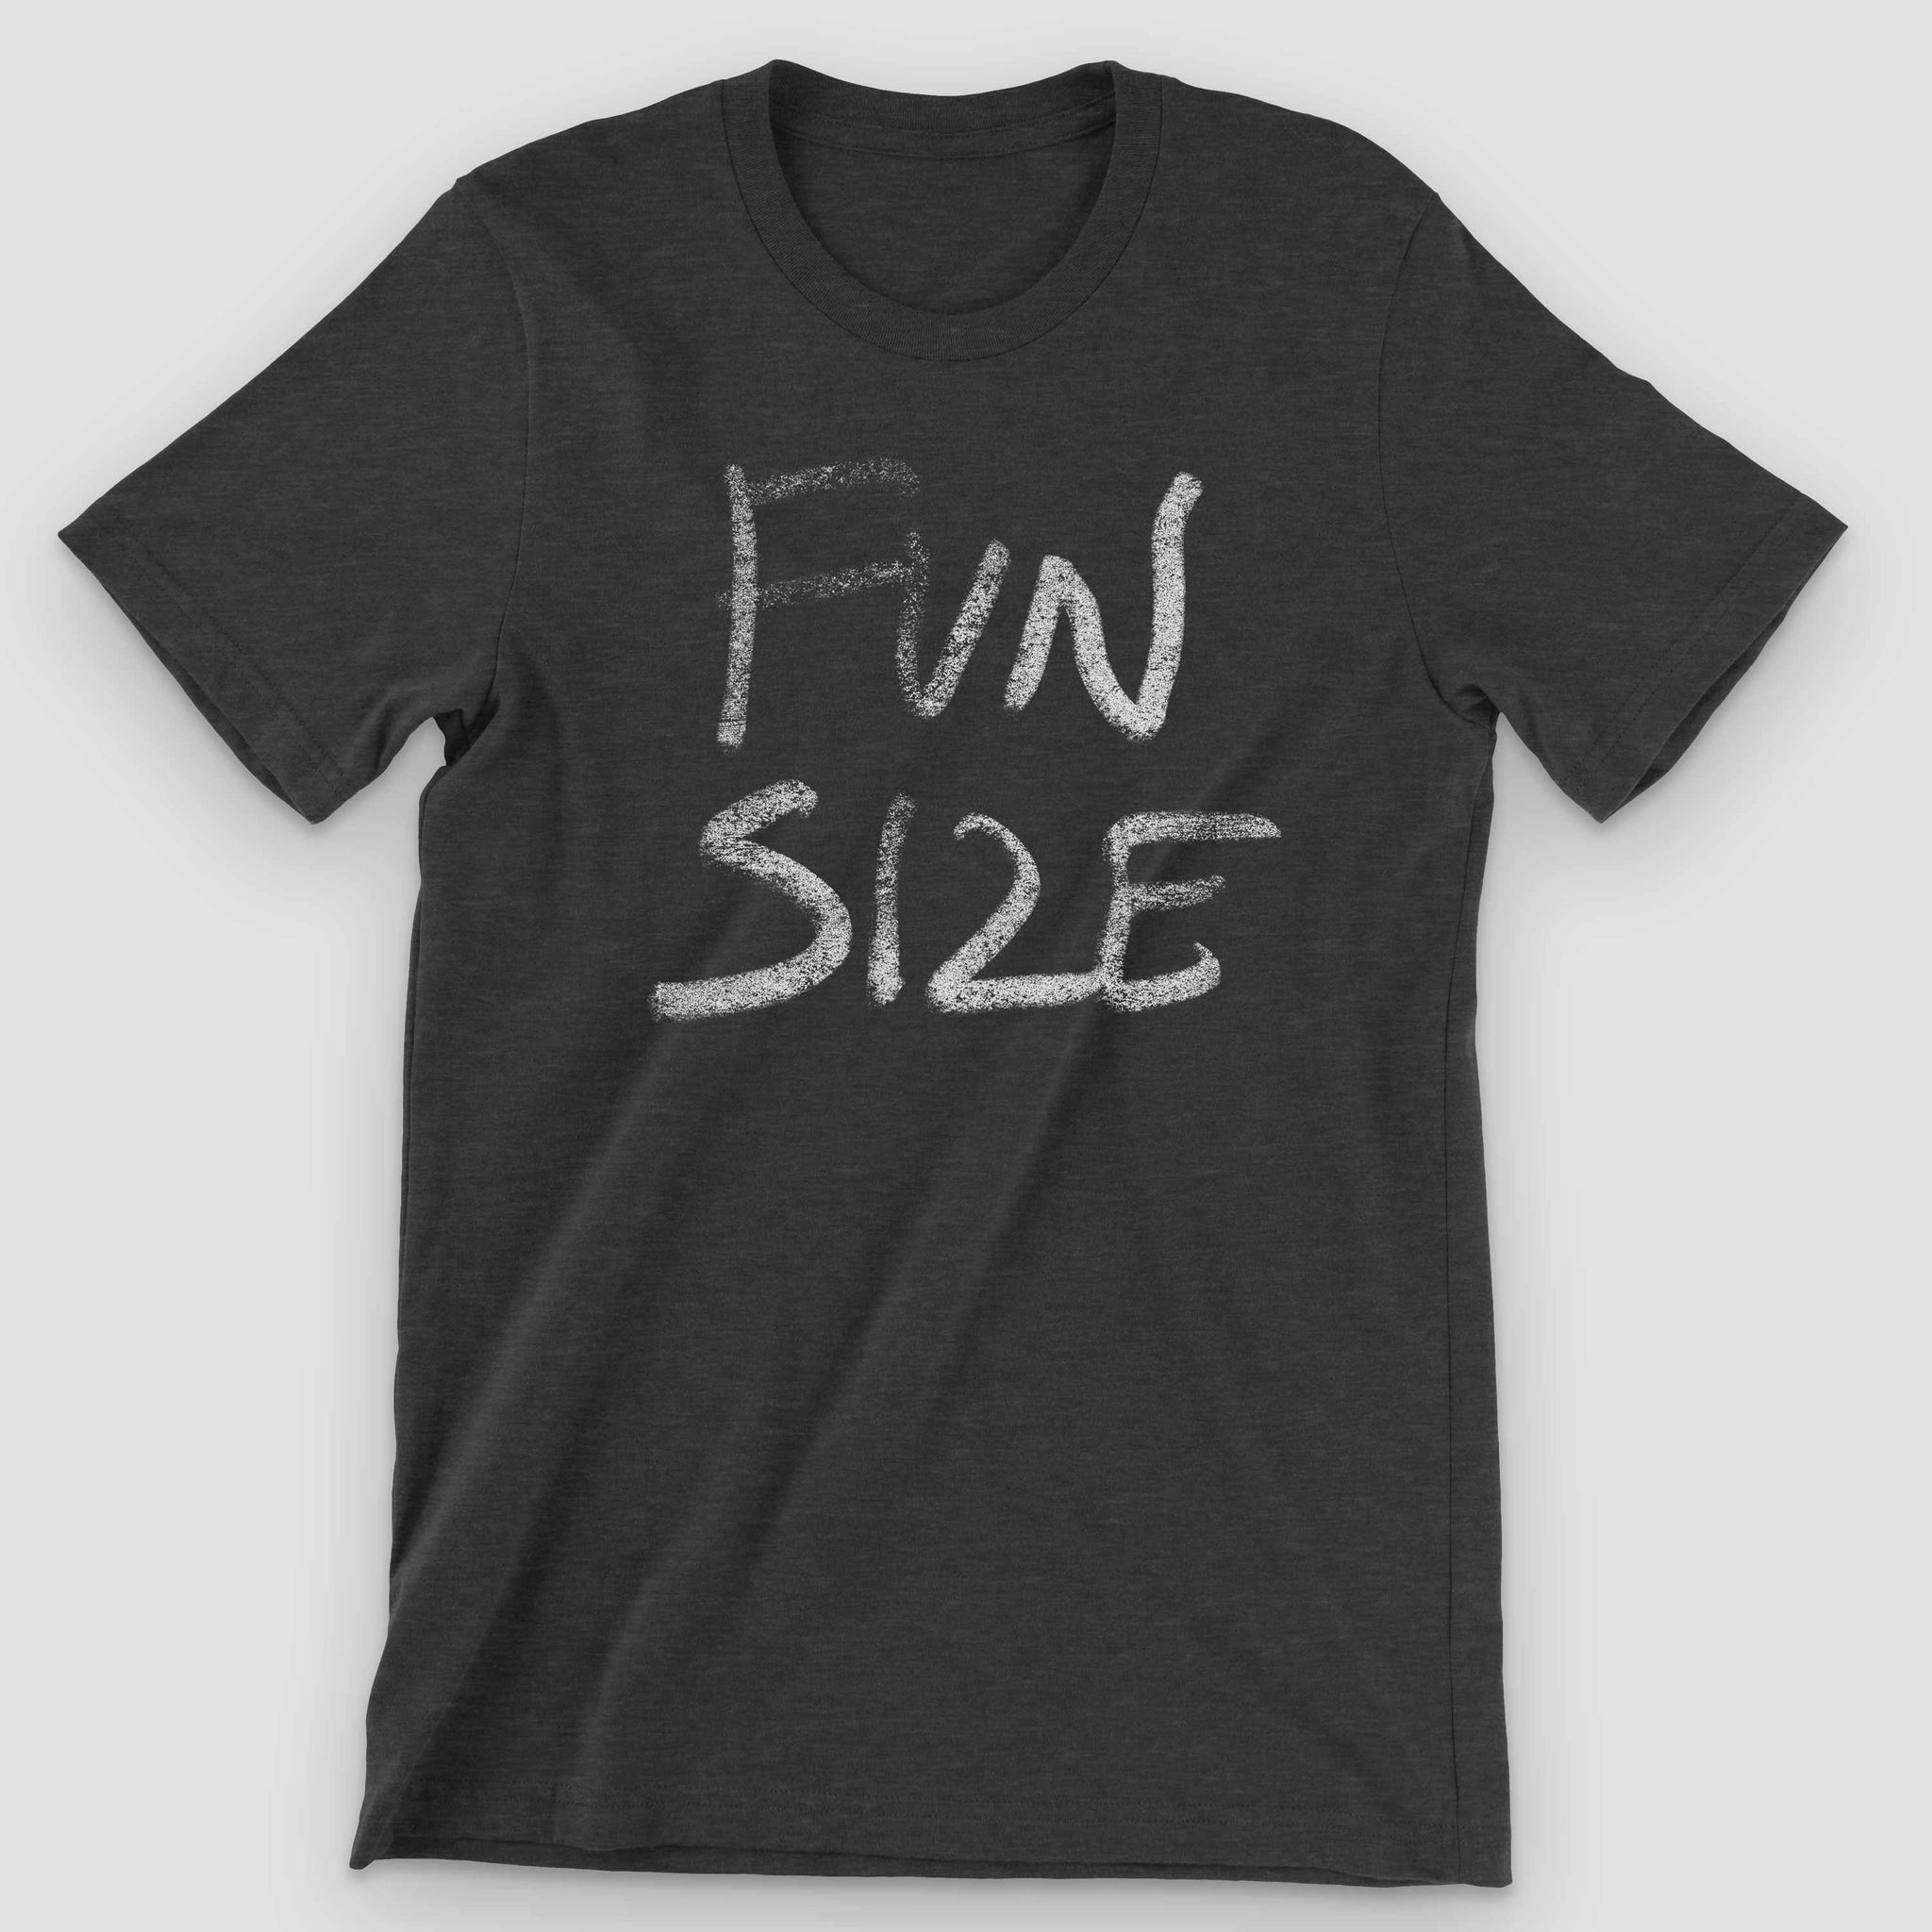 Fun Size Premium T-Shirt